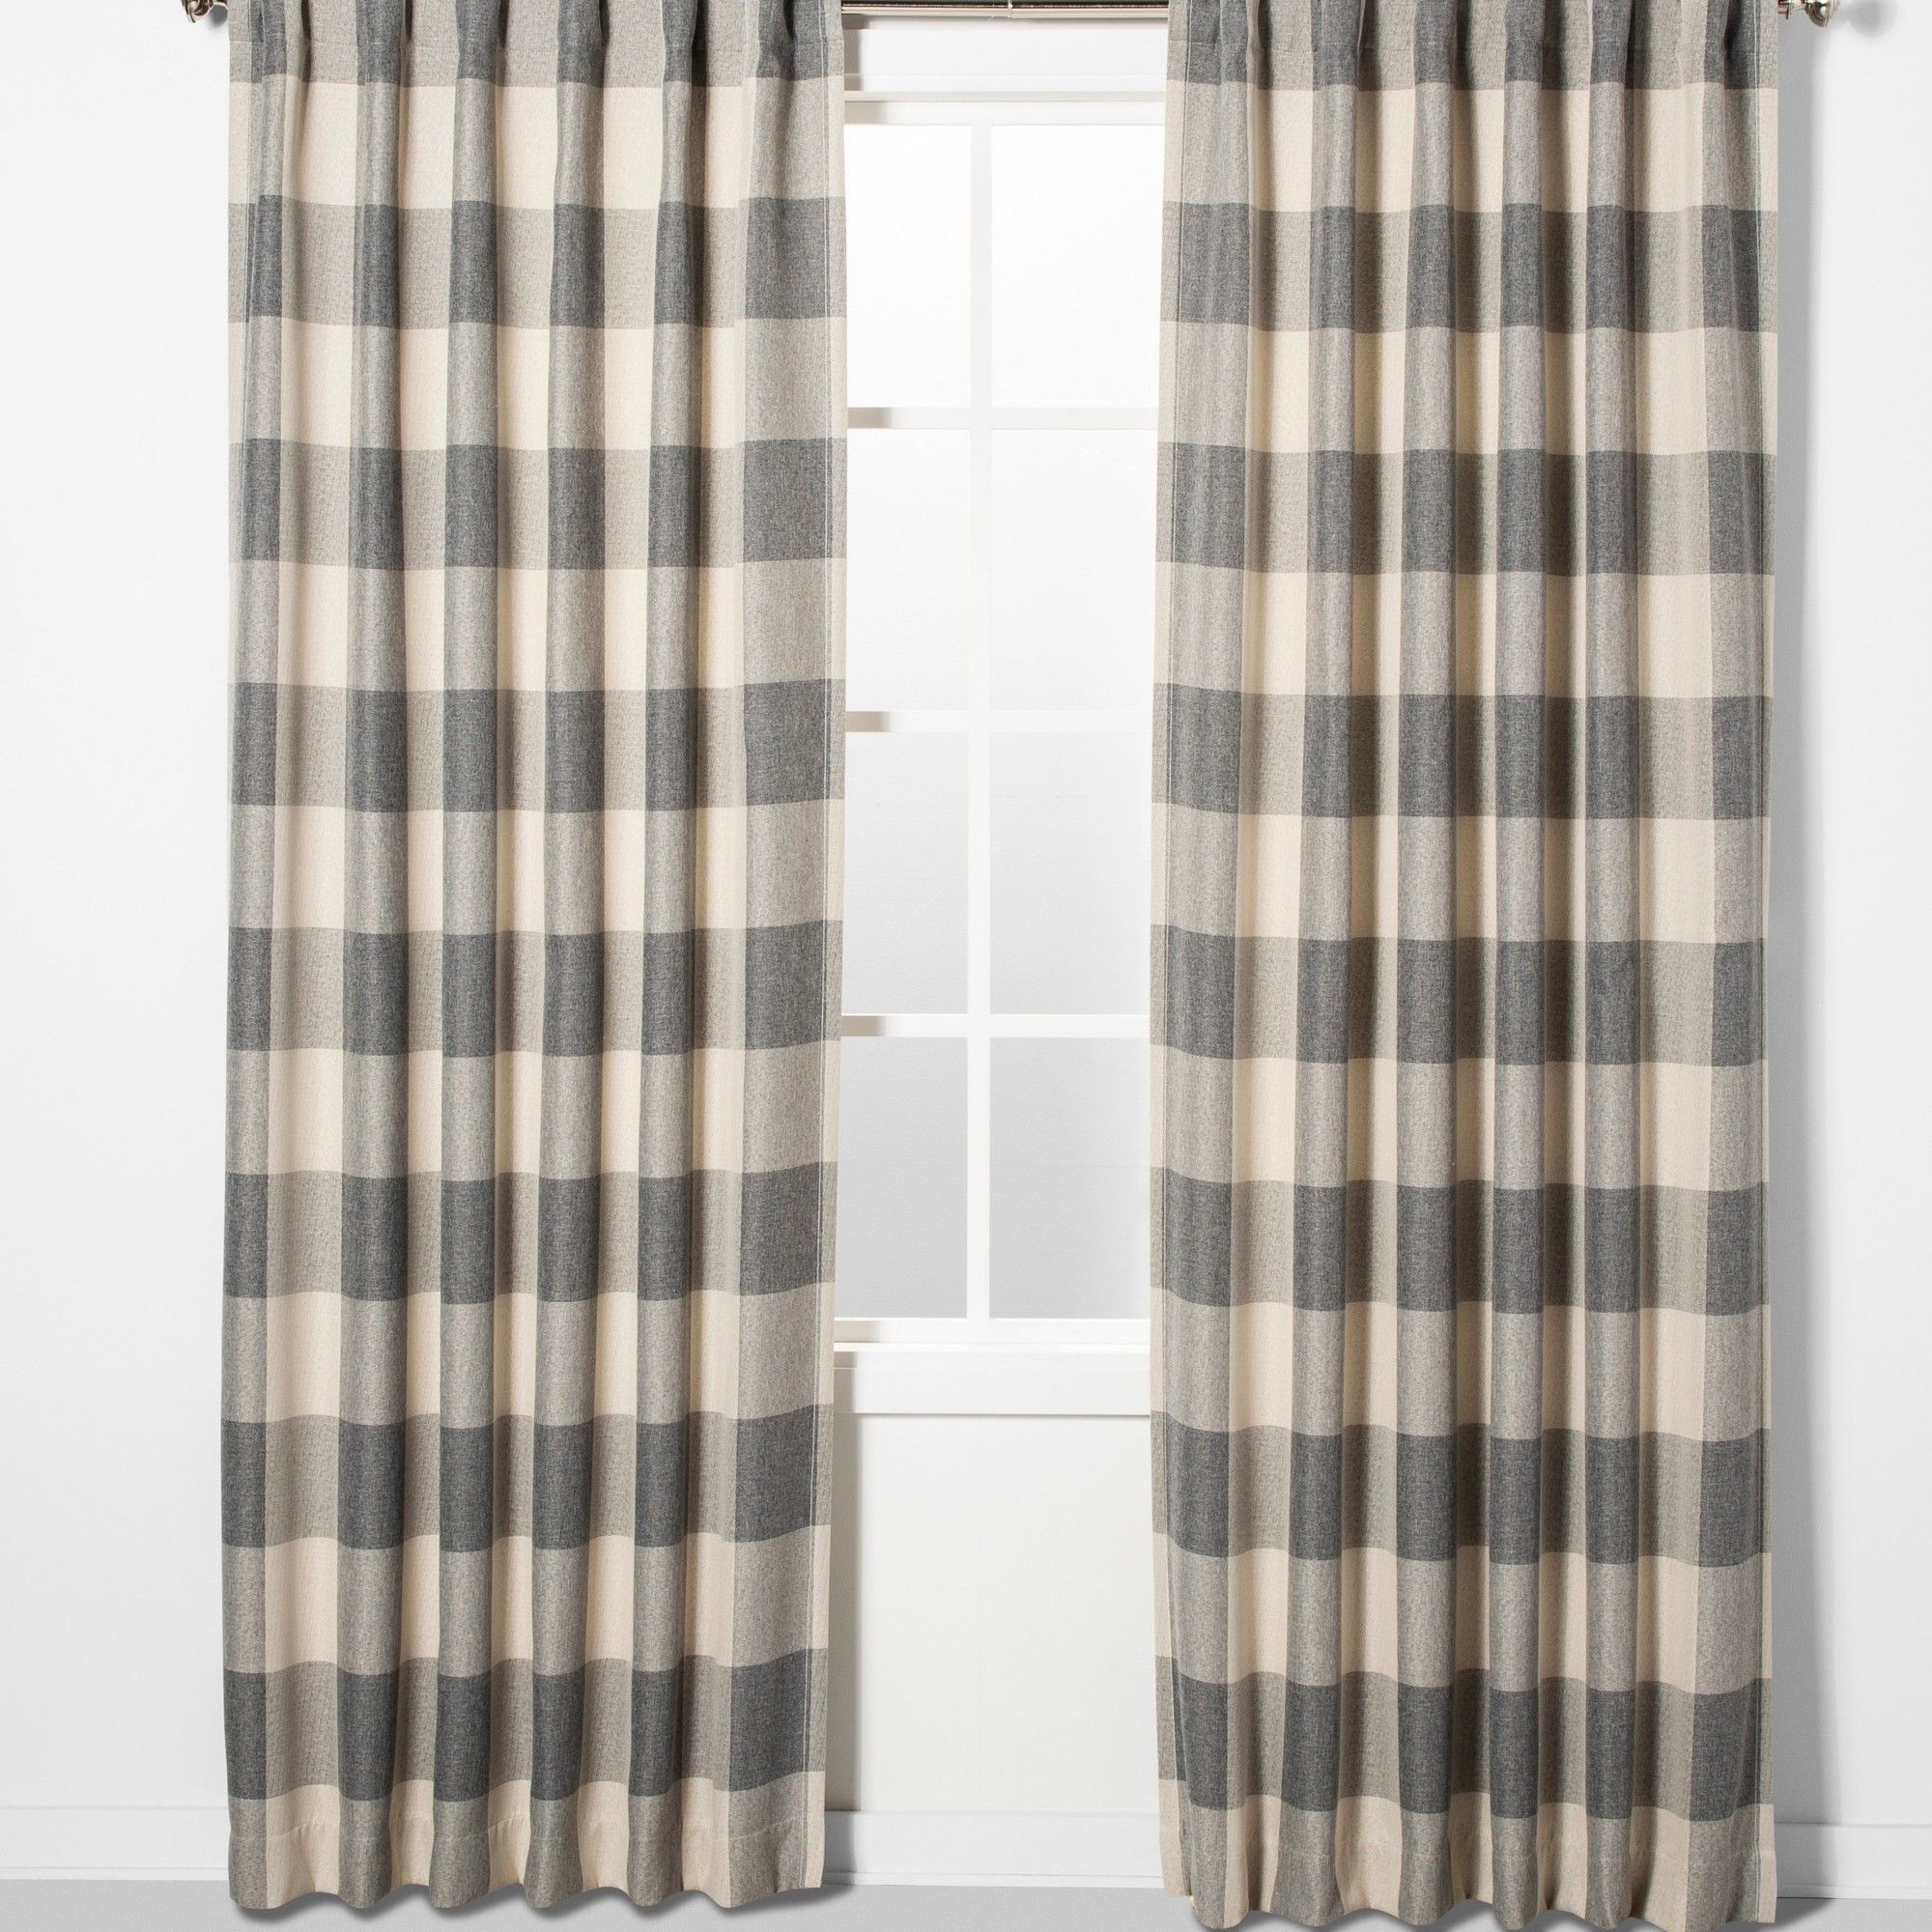 """52""""x84"""" Larkhall Plaid Blackout Window Curtain Panel Gray Inside Ombre Stripe Yarn Dyed Cotton Window Curtain Panel Pairs (View 6 of 20)"""